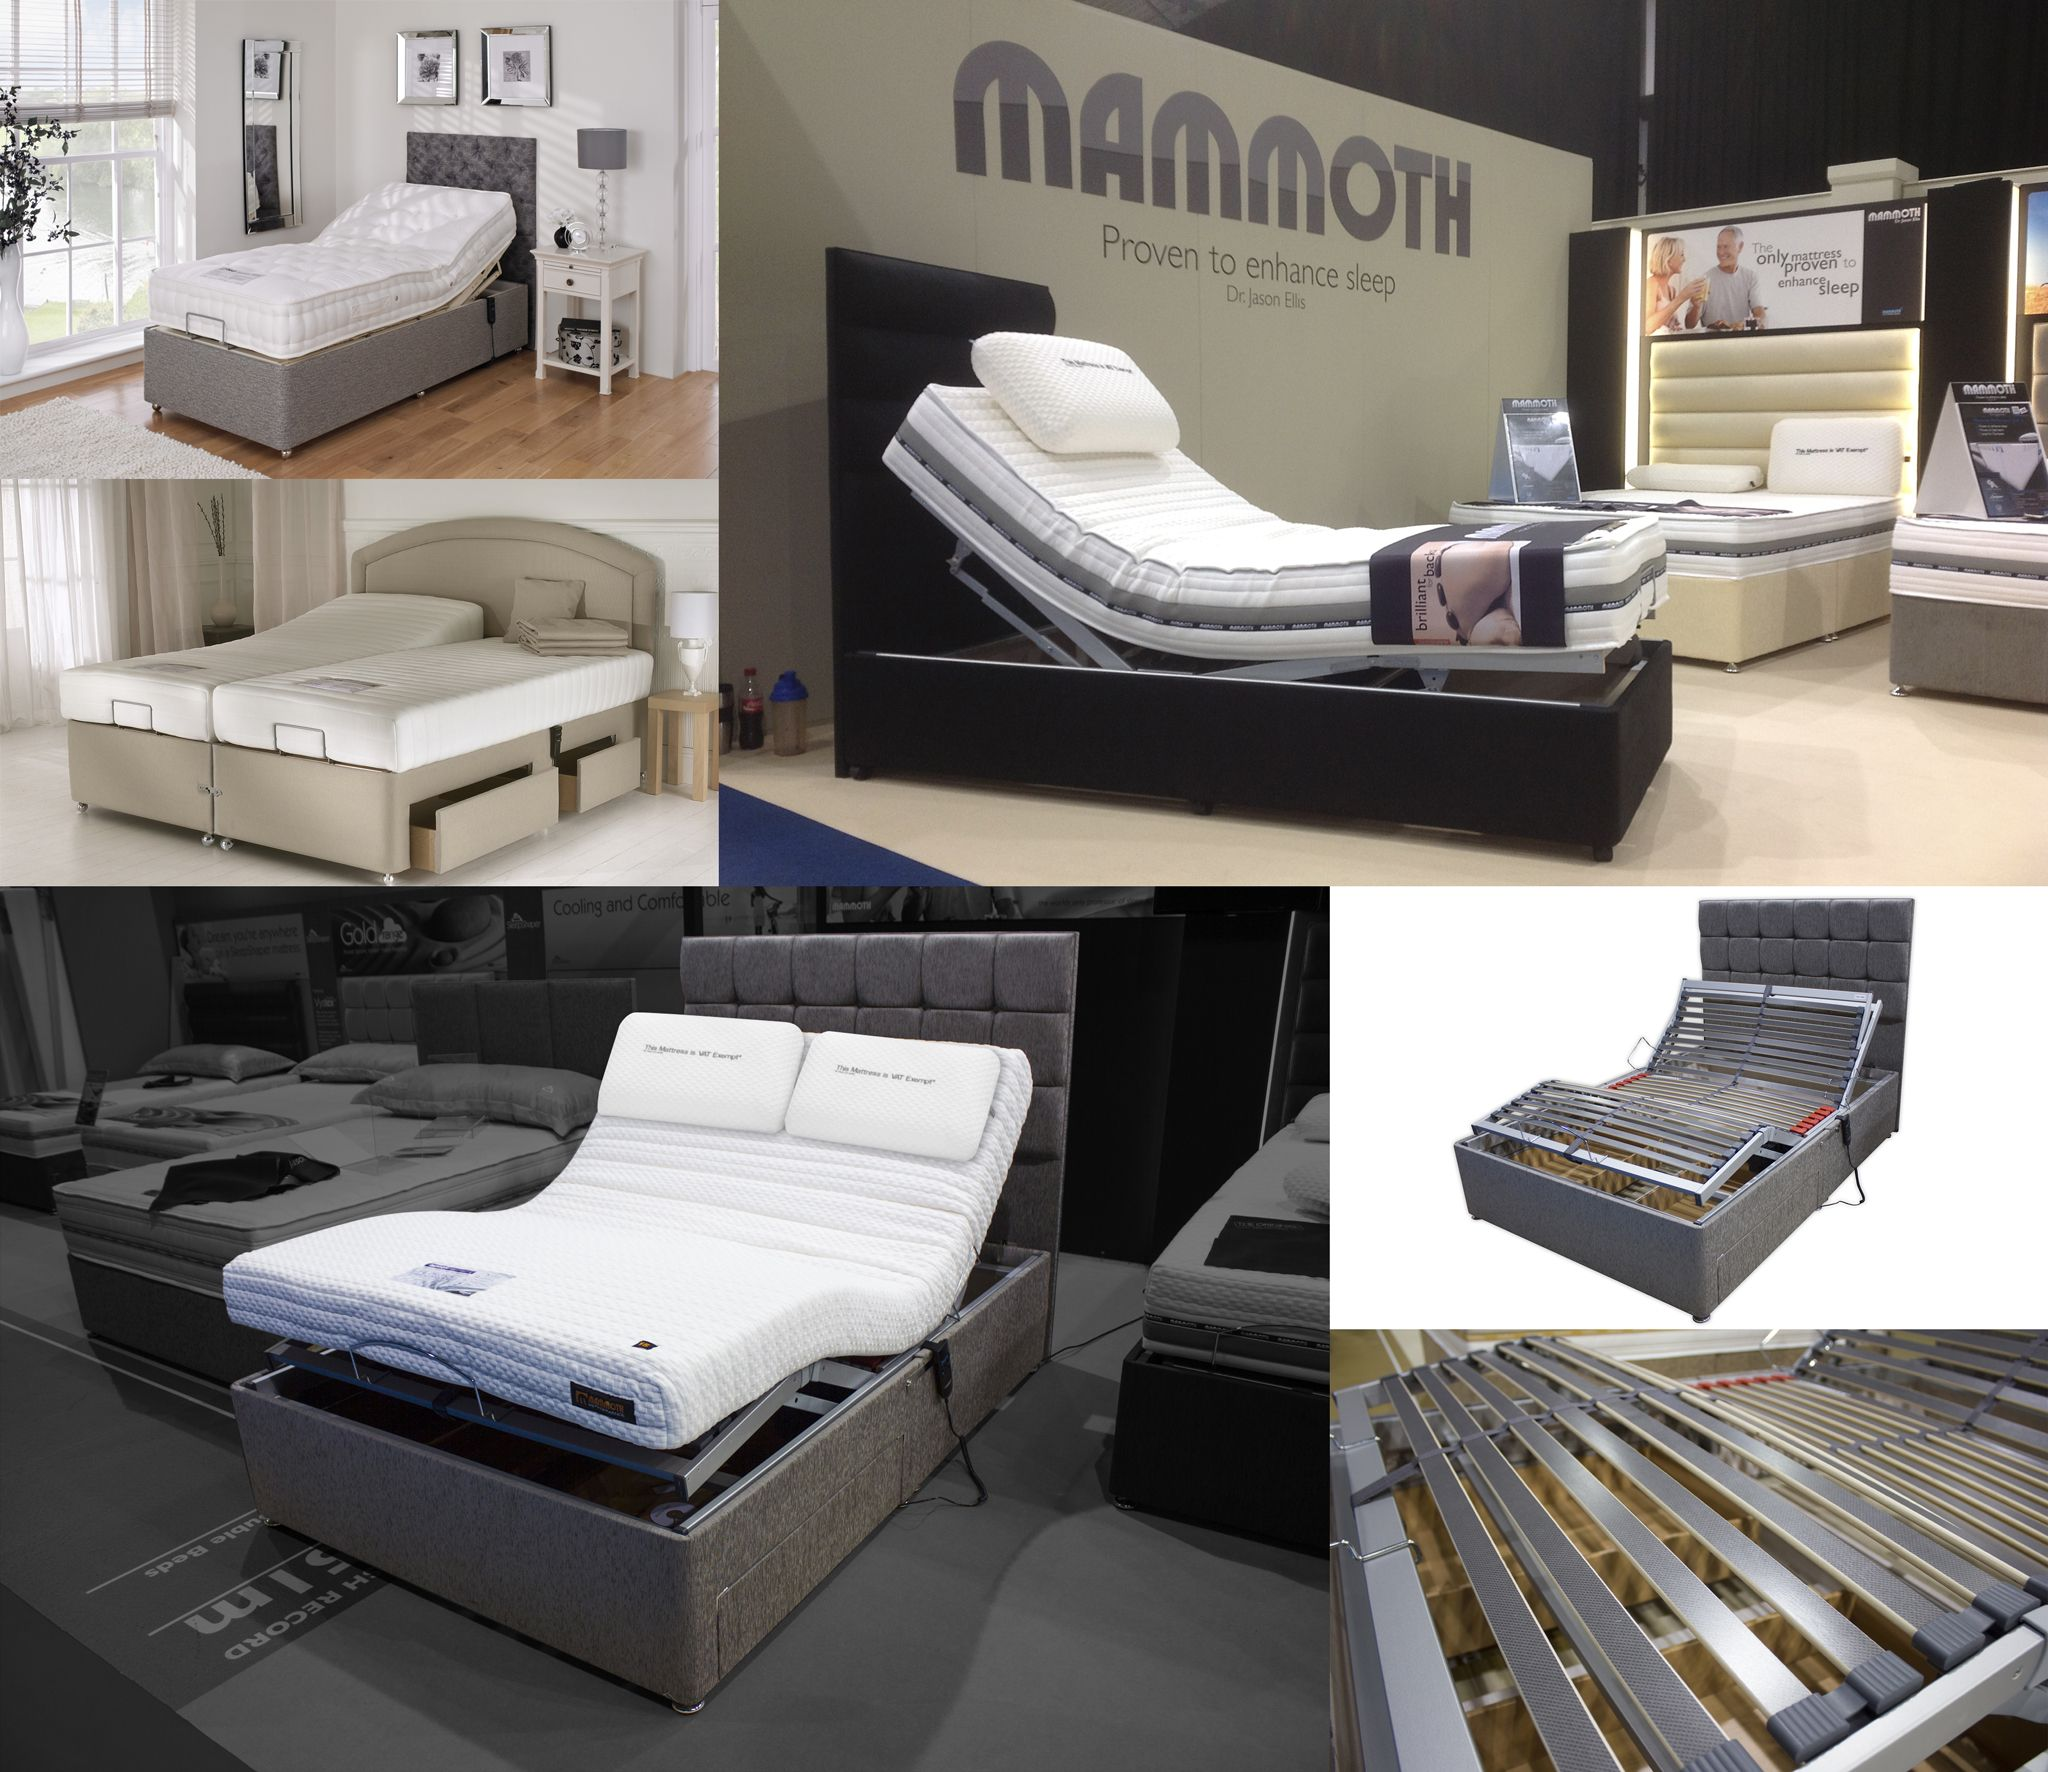 Have you ever considered buying an adjustable bed? The